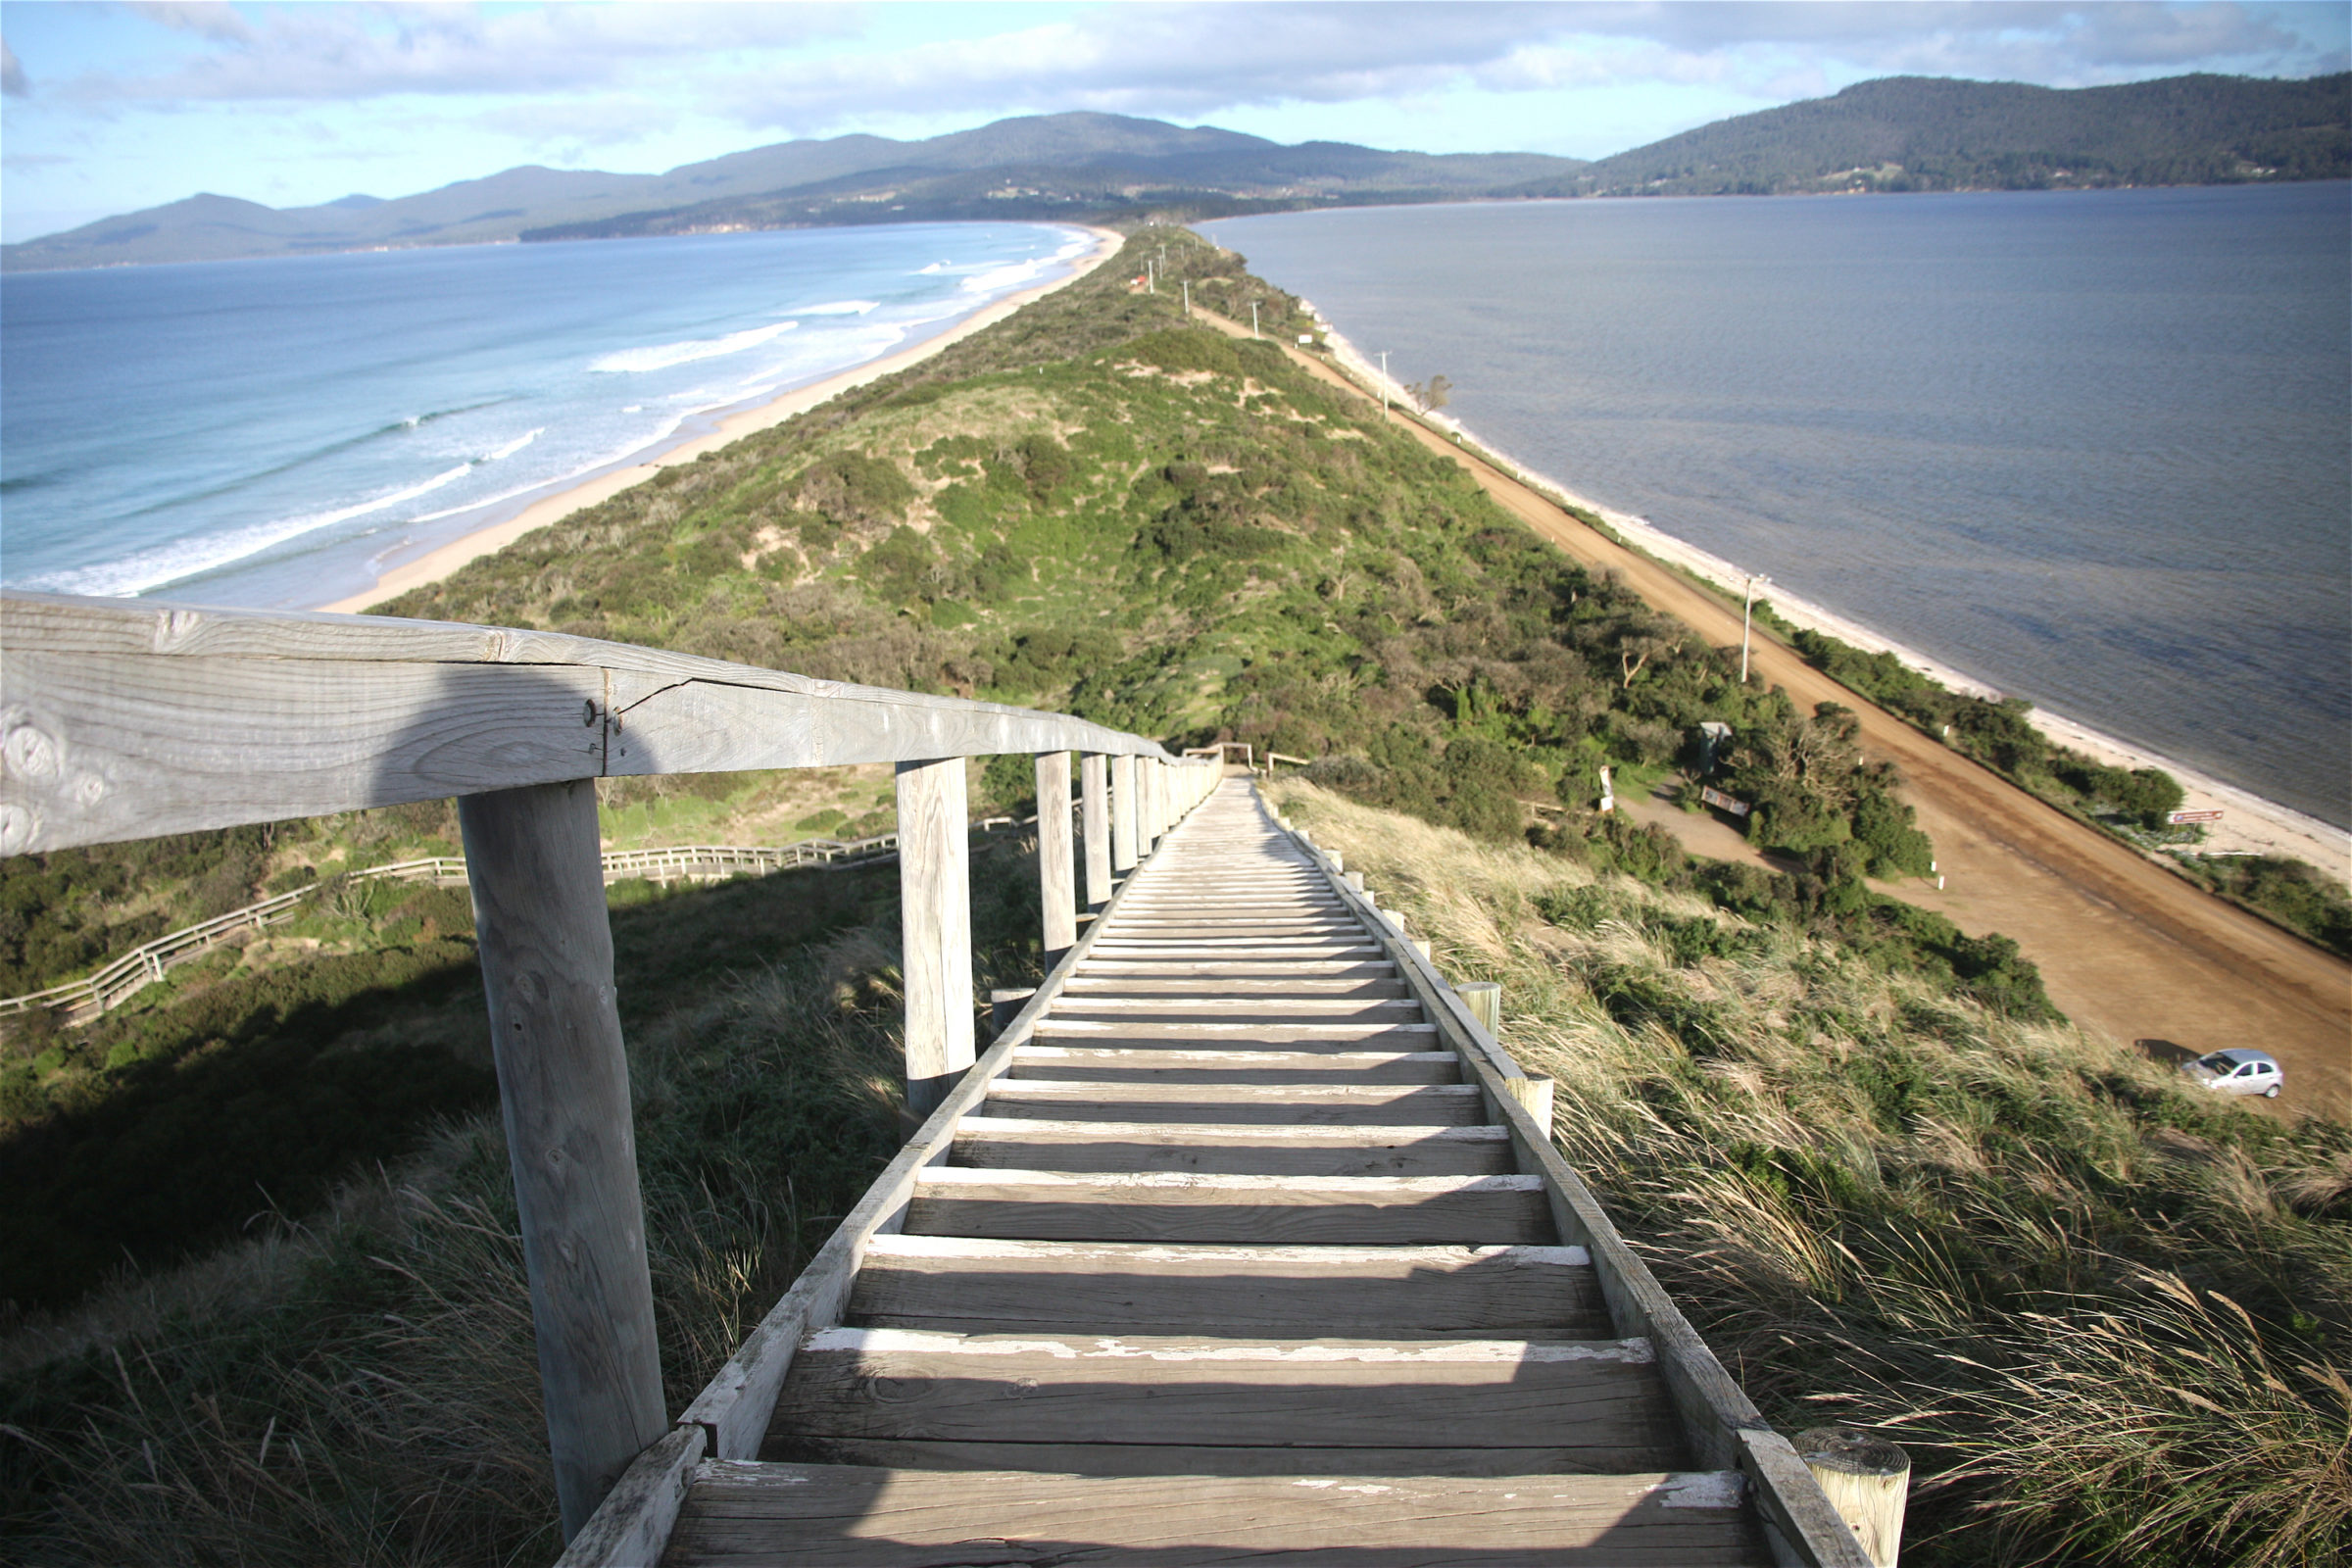 Tasmania Road Trip Itinerary, Day 2: Bruny Island